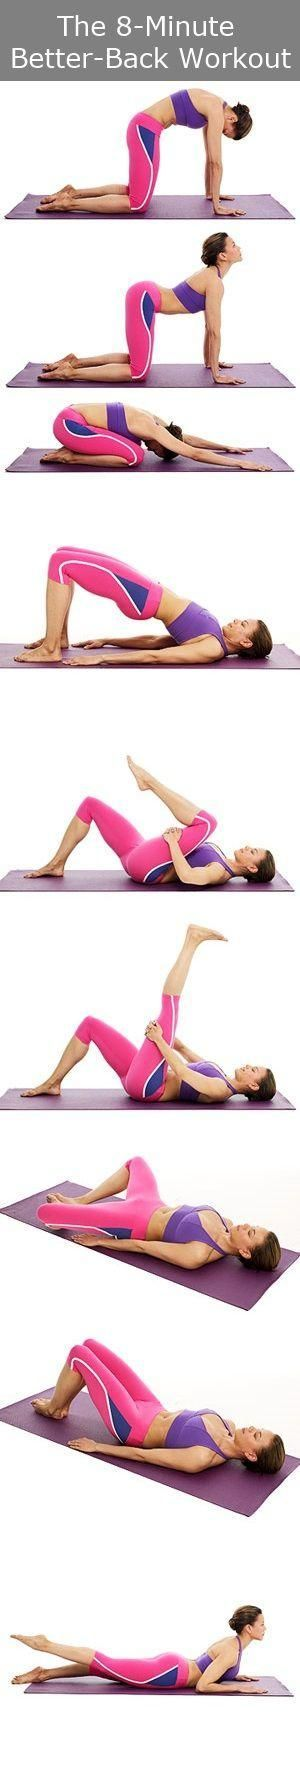 Yoga | The 8-Minute Better-Back Workout ........ Back yoga exercises that help prevent back pain, eliminate back fat and strengthen and condition your back.